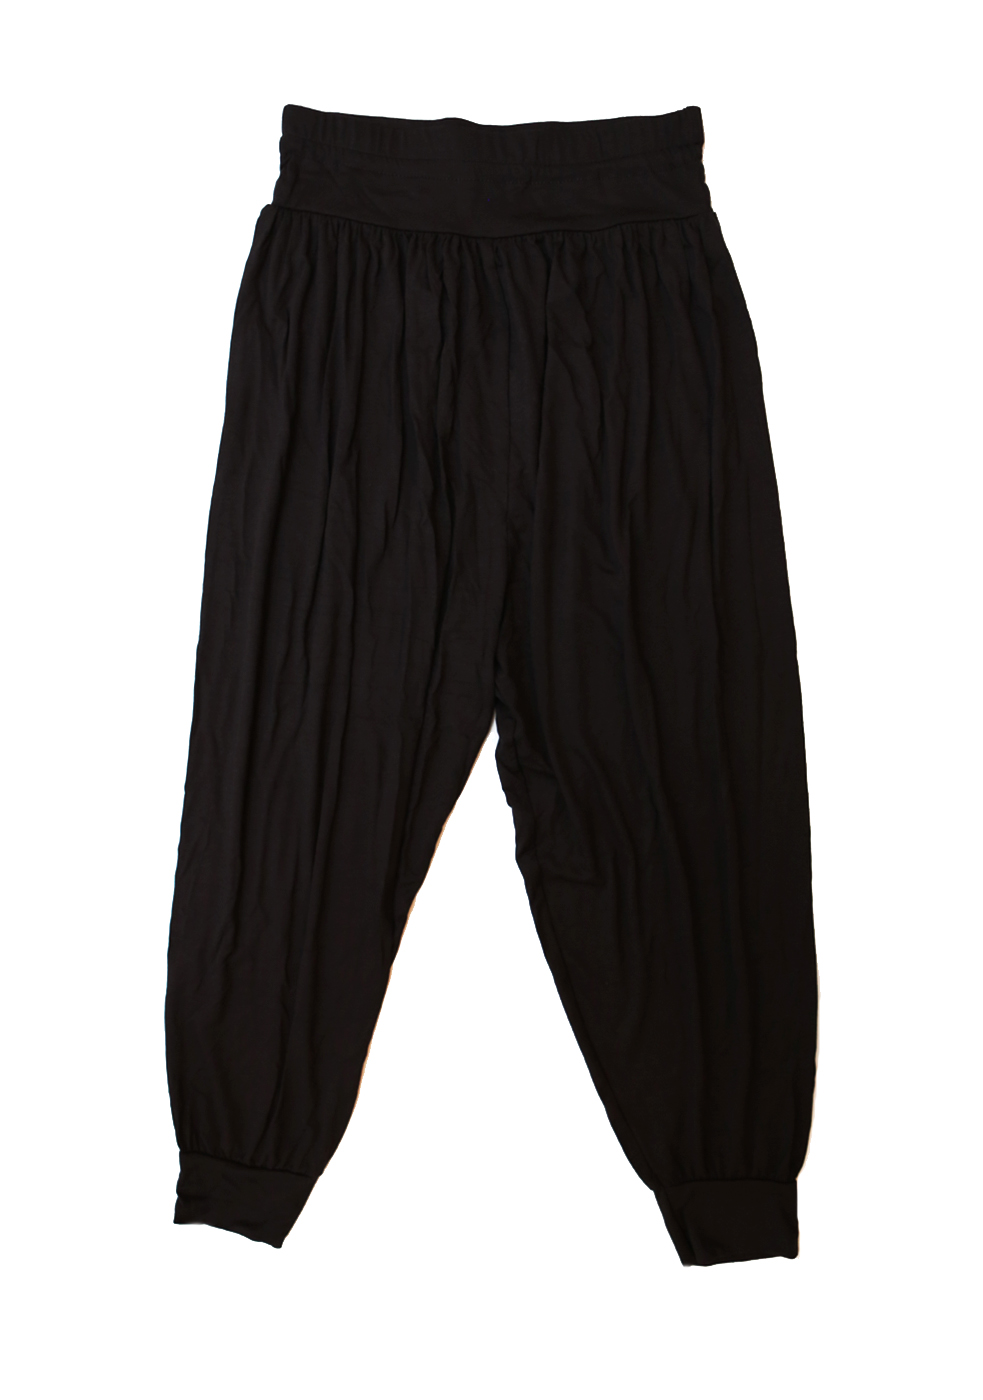 Shop for low price, high quality Harem Pants on AliExpress. Harem Pants in Pants, Men's Clothing & Accessories and more Addany Hip Hop Harem Male Trousers Mens Black Joggers Pants Sweatpants 4XL US $ - / piece. Orders (2) Addany Official Store. Add to Wish List.